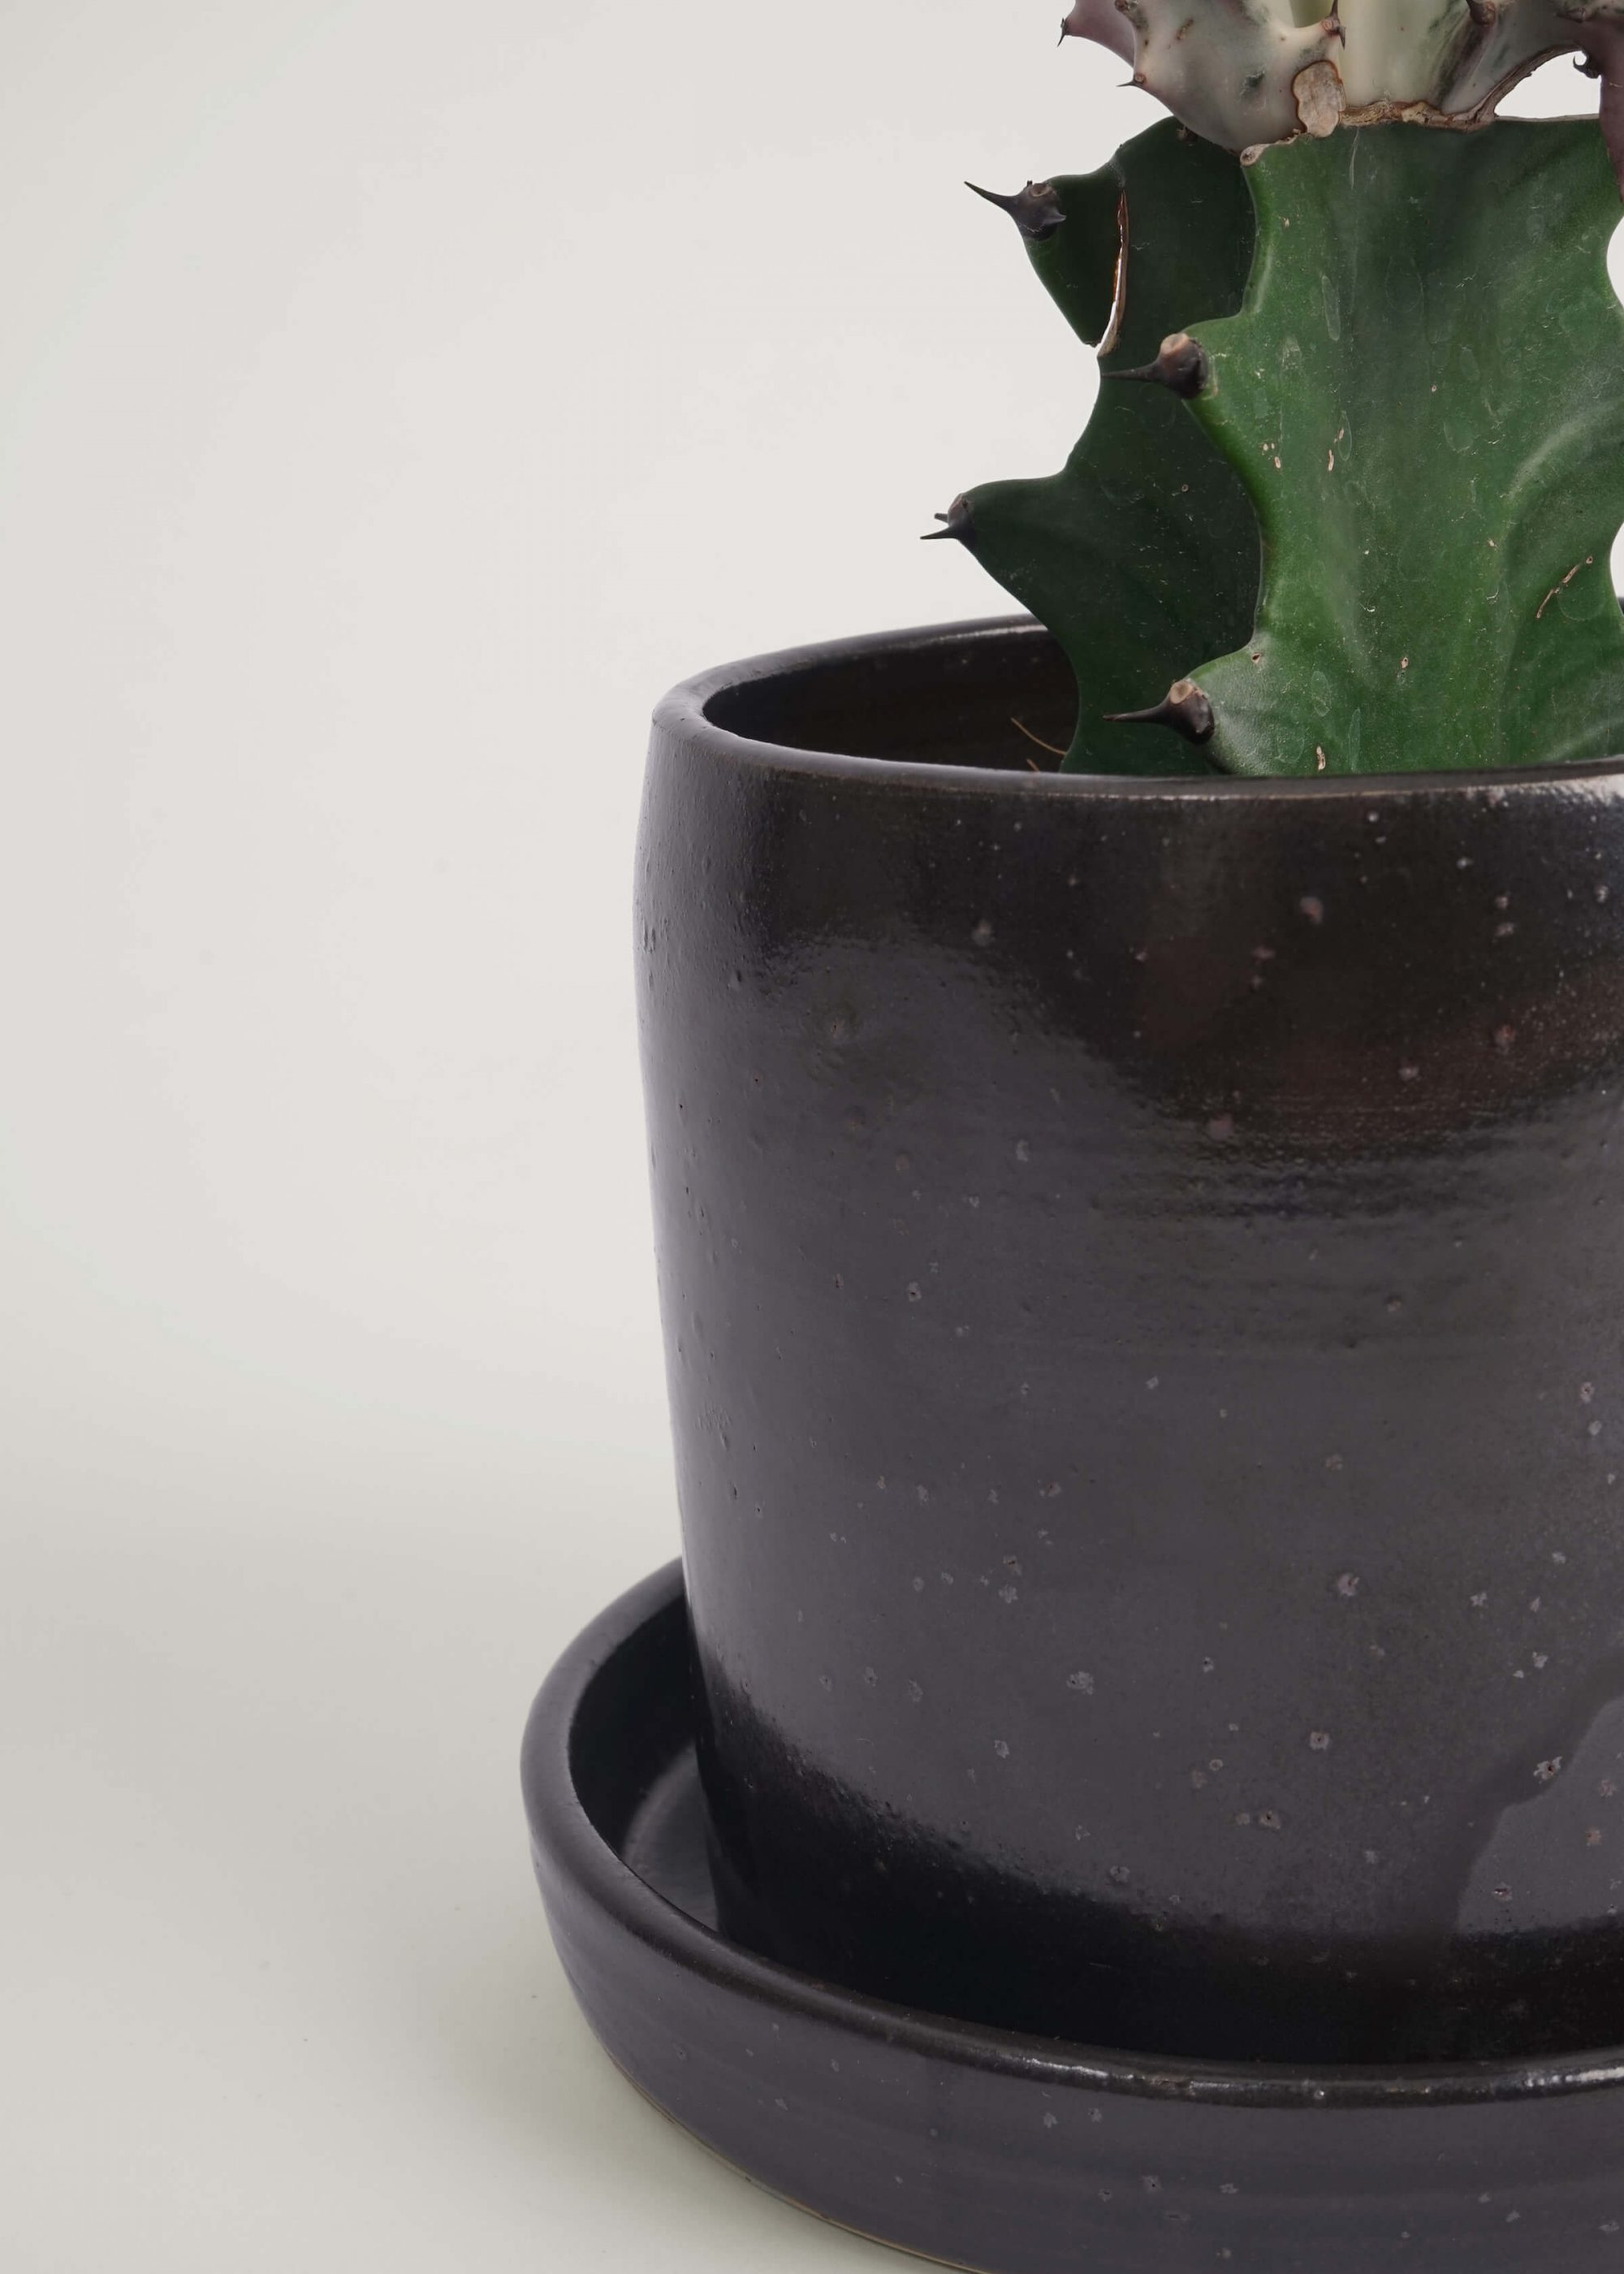 Product image for N° ICD11 Burri Planter Plate S